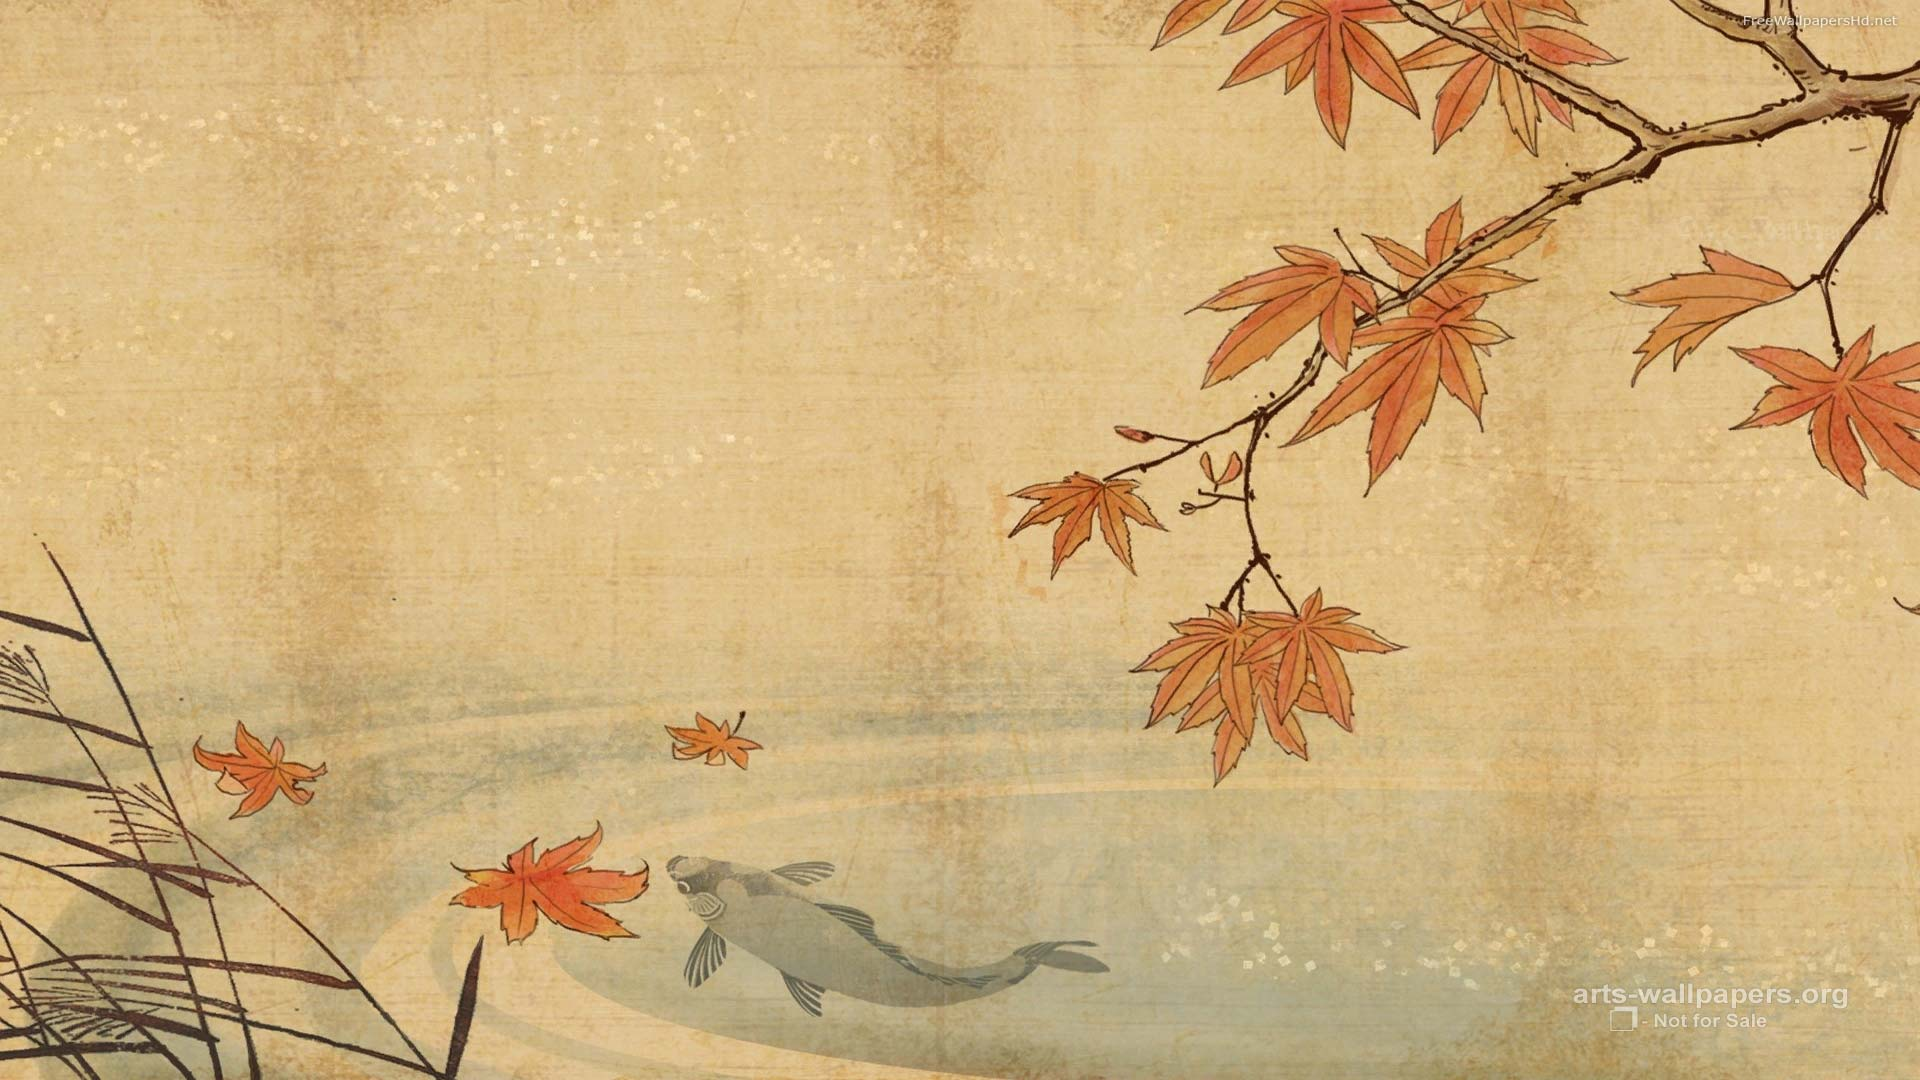 Chinese Painting Art Wallpapers Paintings Desktop Art Backgrounds 1920x1080